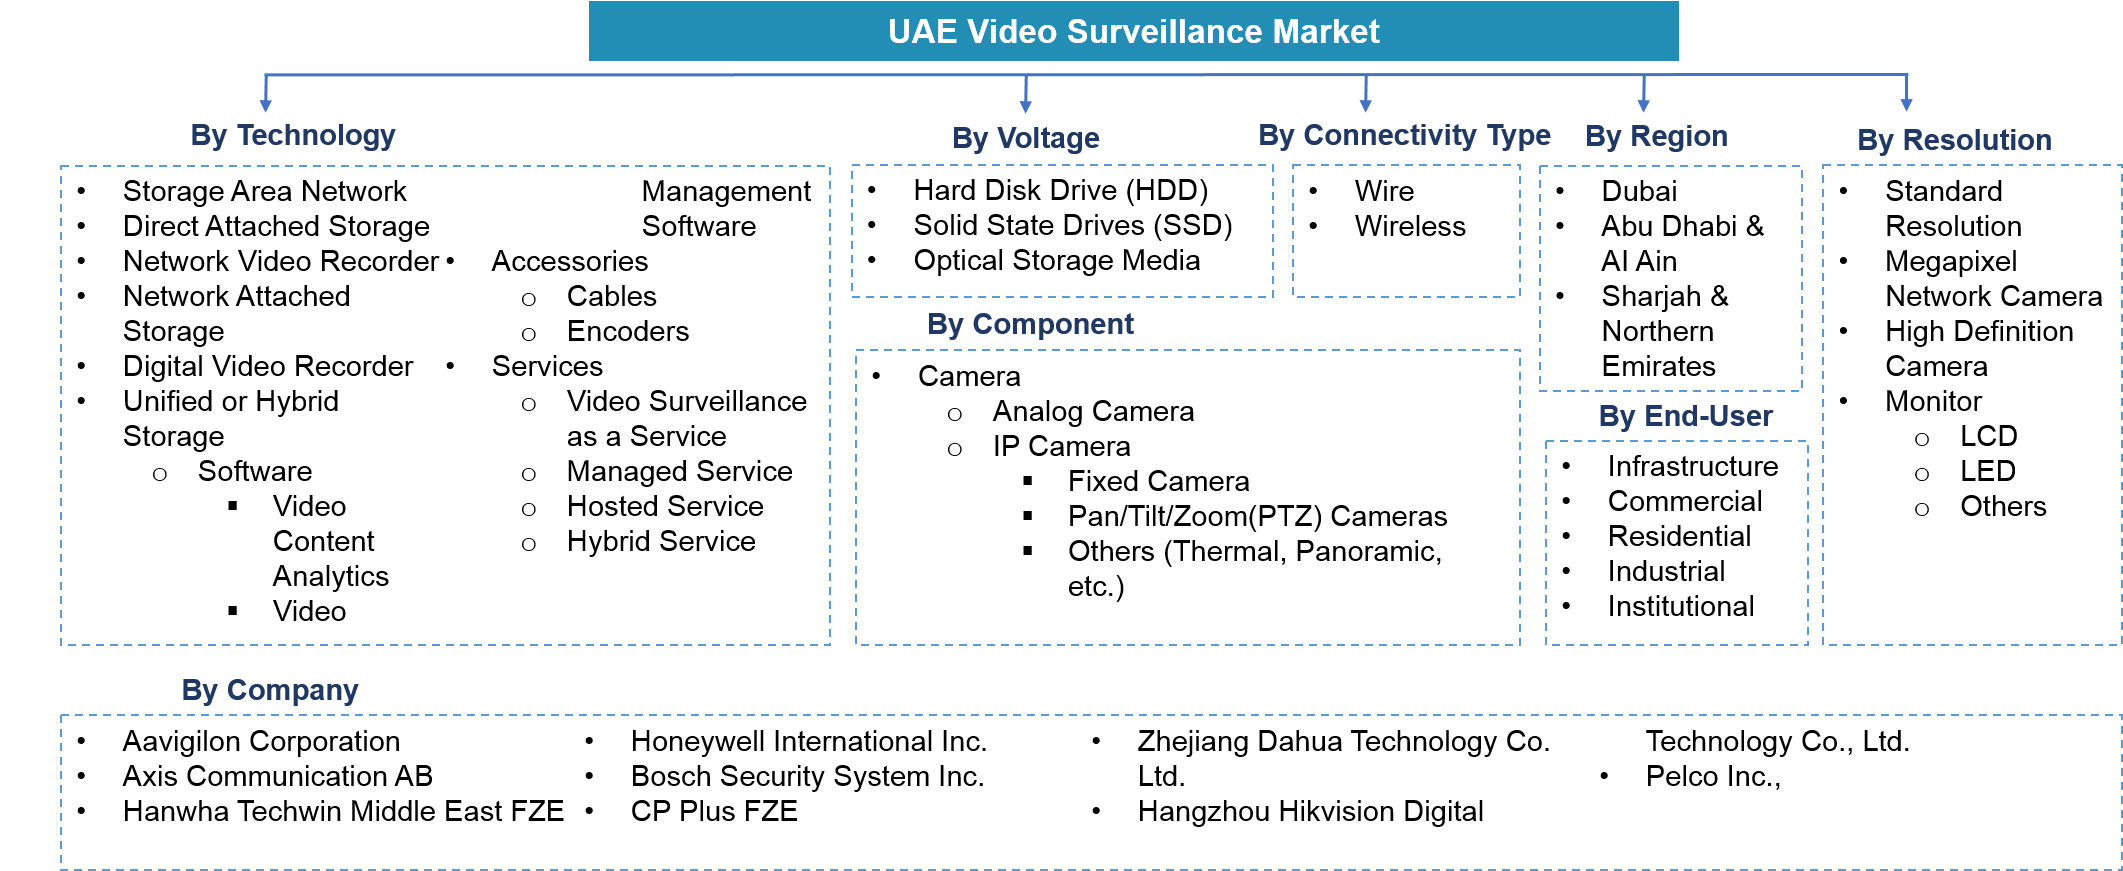 UAE Video Surveillance Market Segmentation